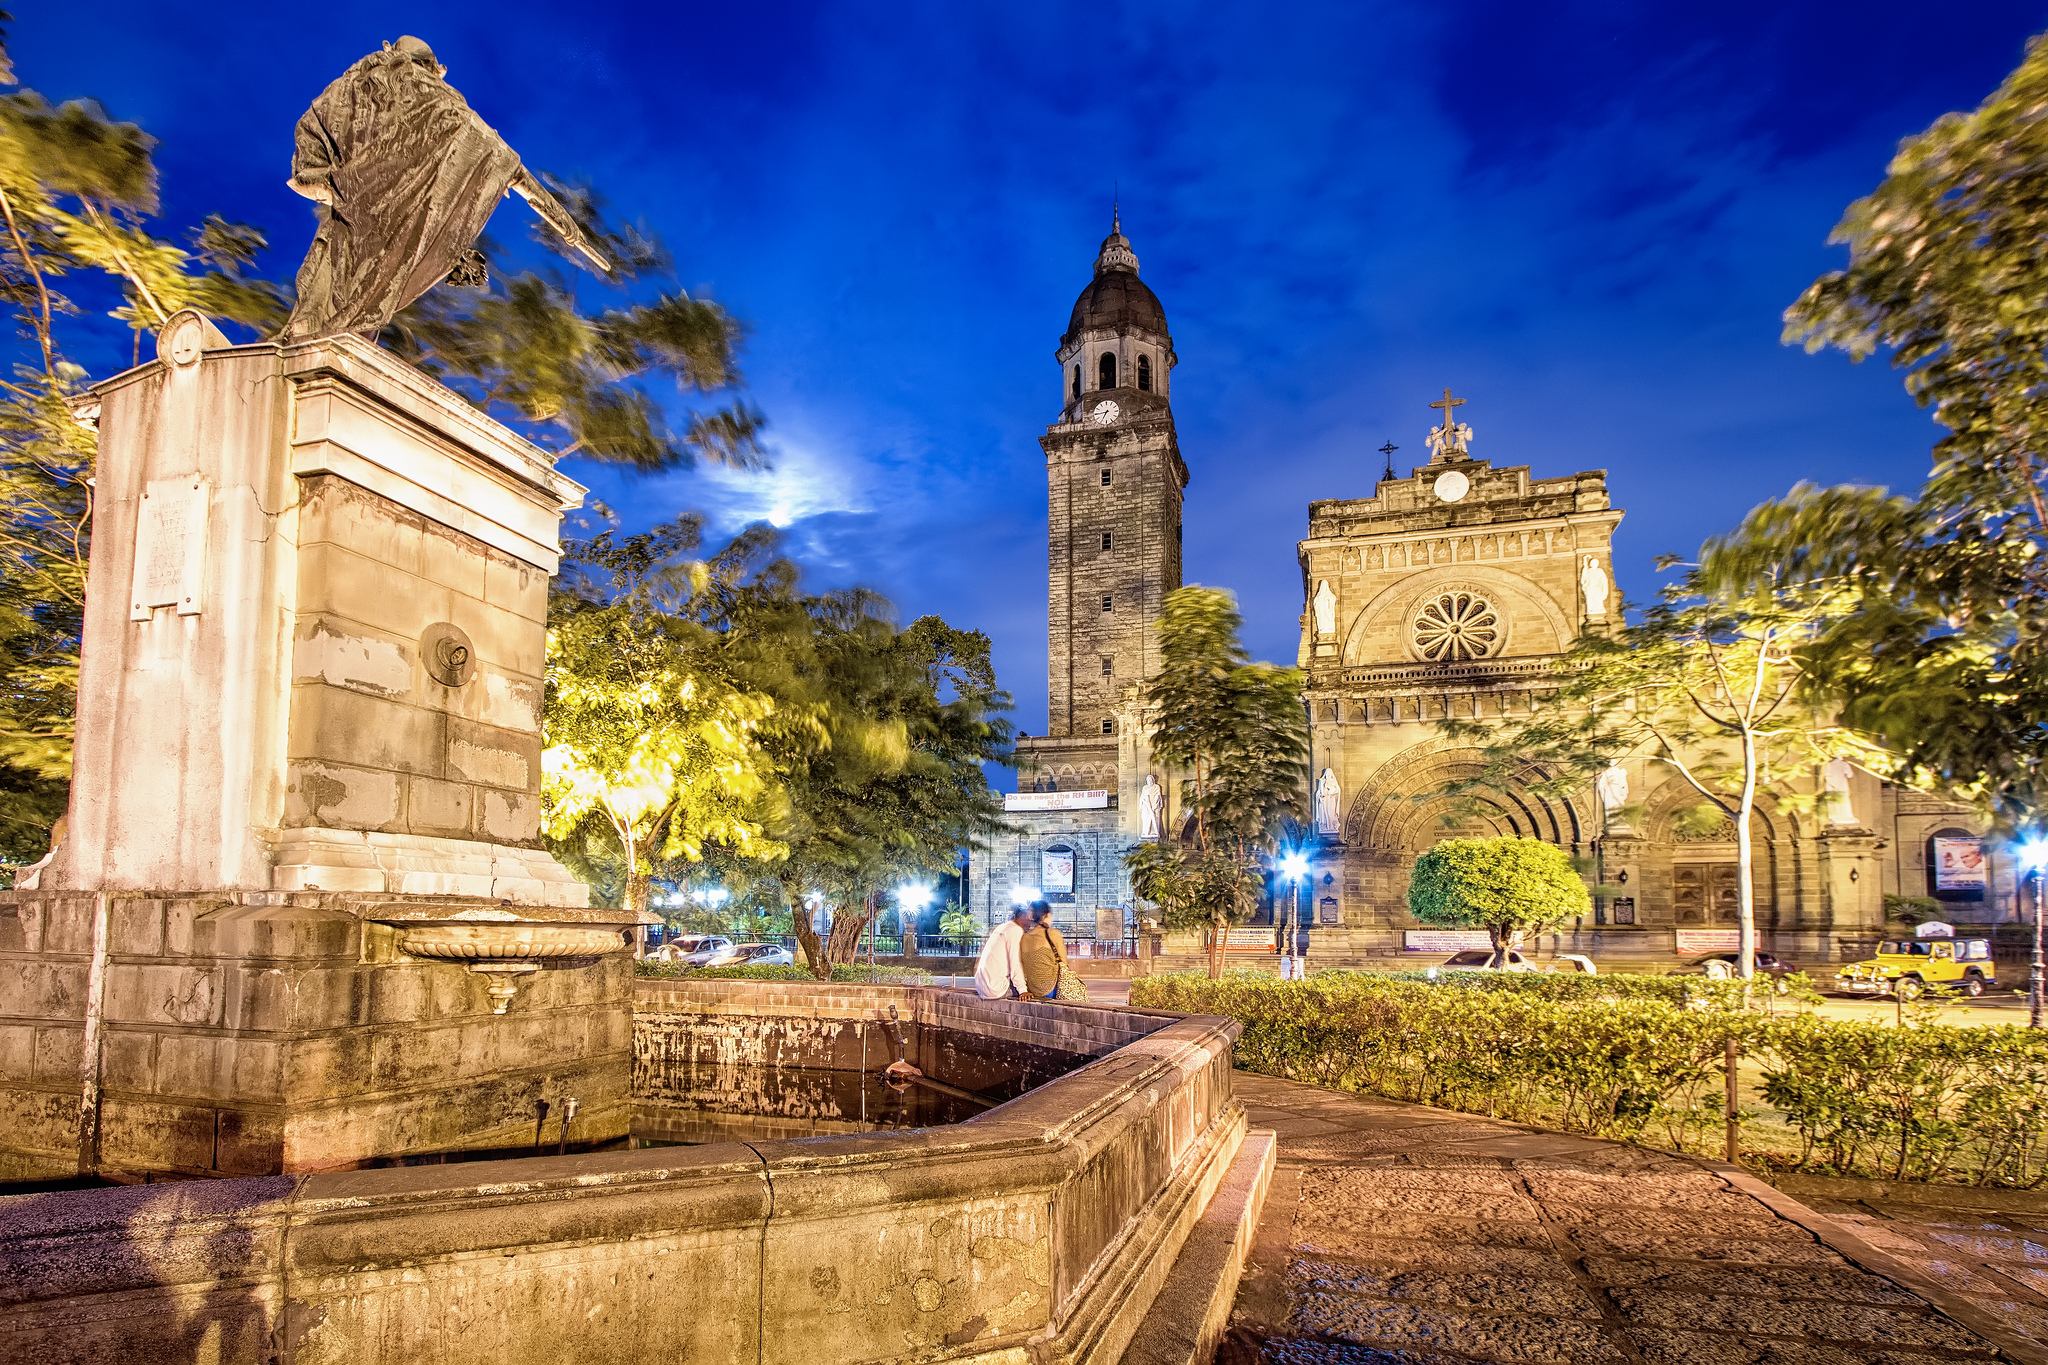 dating place in manila philippines The ultimate guide to girls in the philippines  so here are some thoughts i've picked up on dating and smashing  she'll agree to meet you at place .